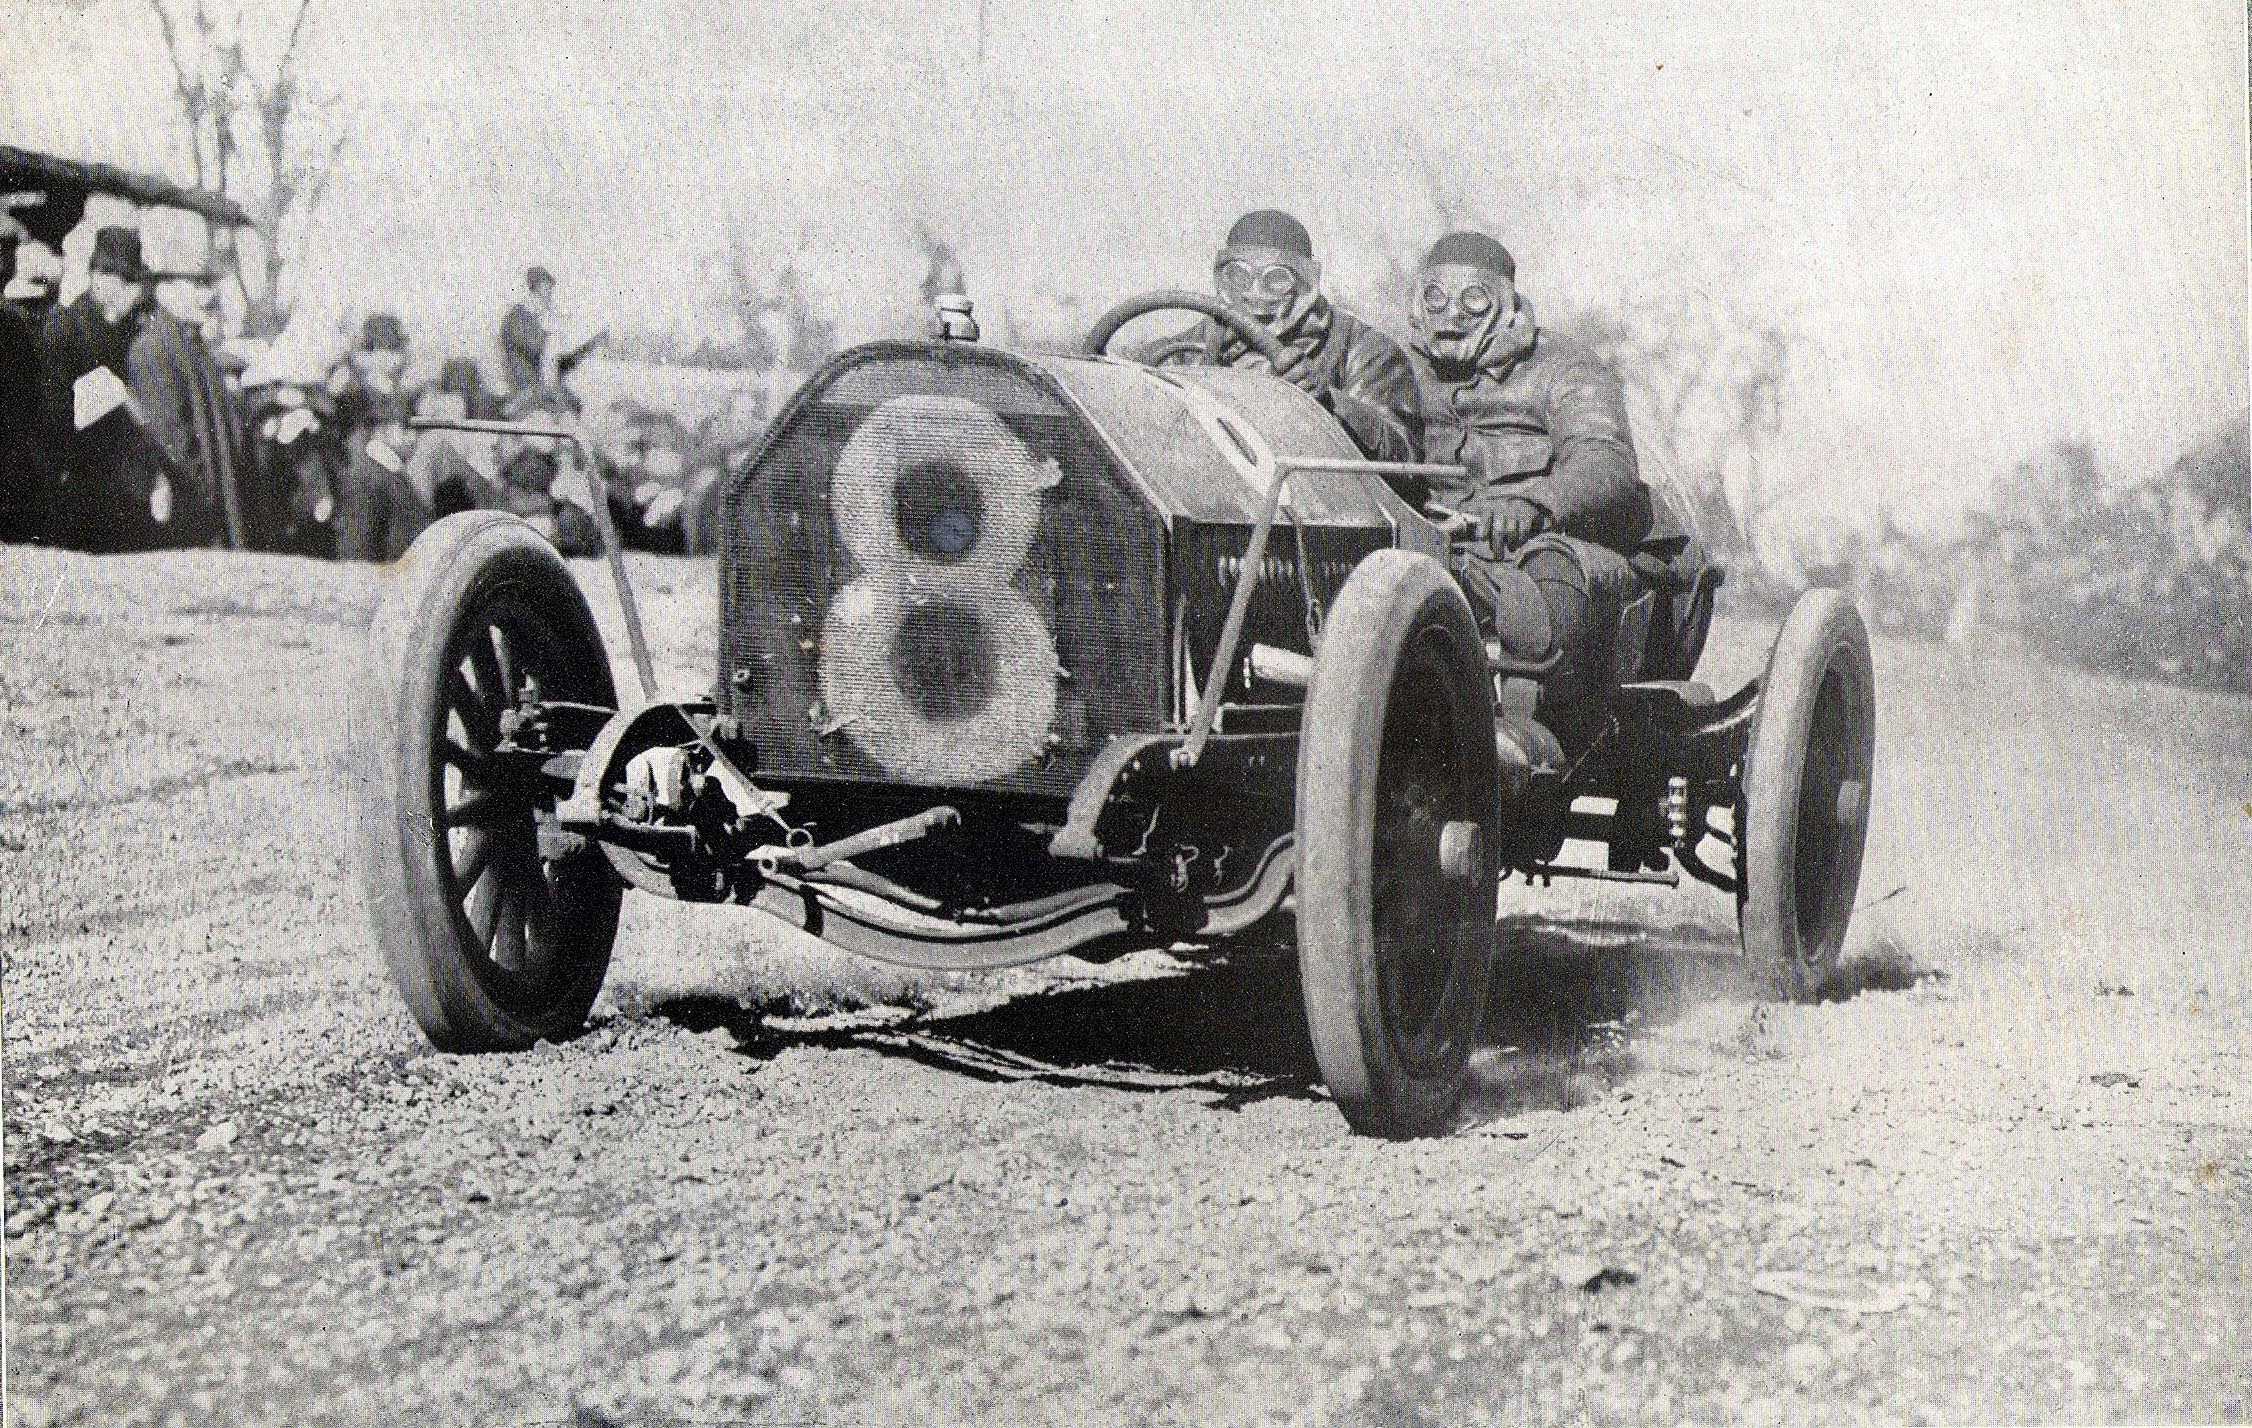 A photo of the Alco Black Beast, which participated in the 1909 Vanderbilt Cup Race.